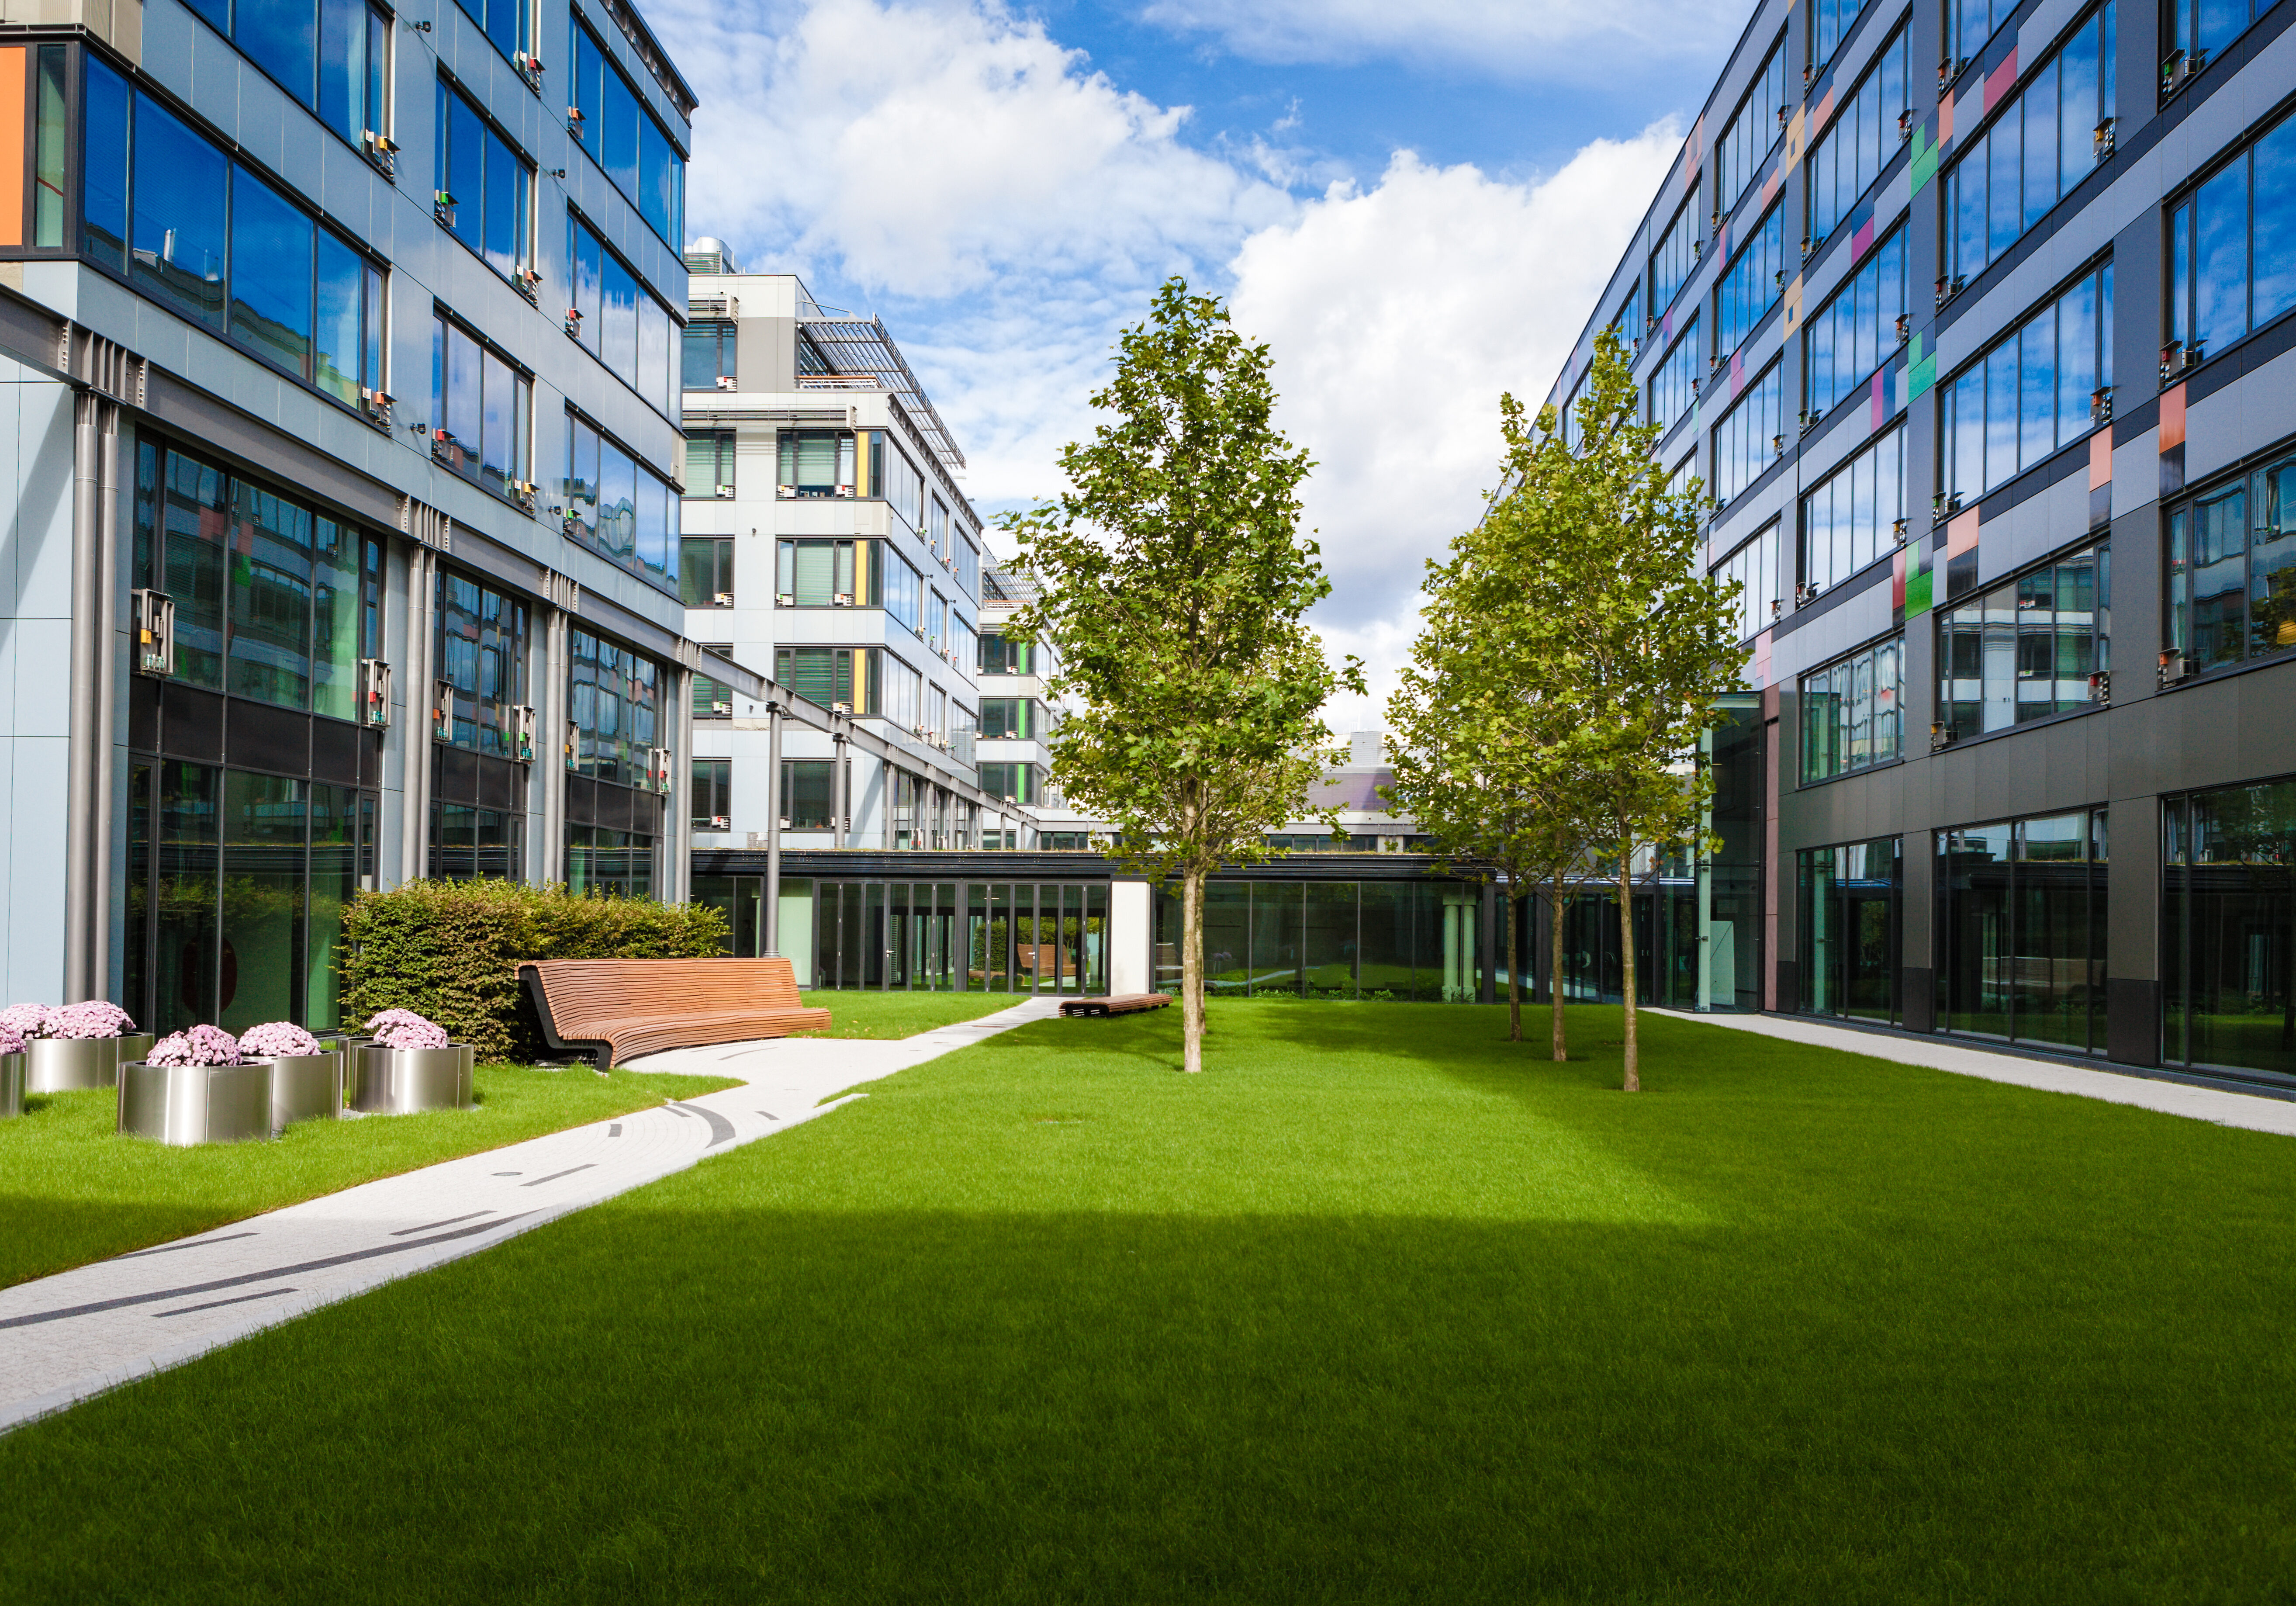 Modern office park with green lawn, trees and bench